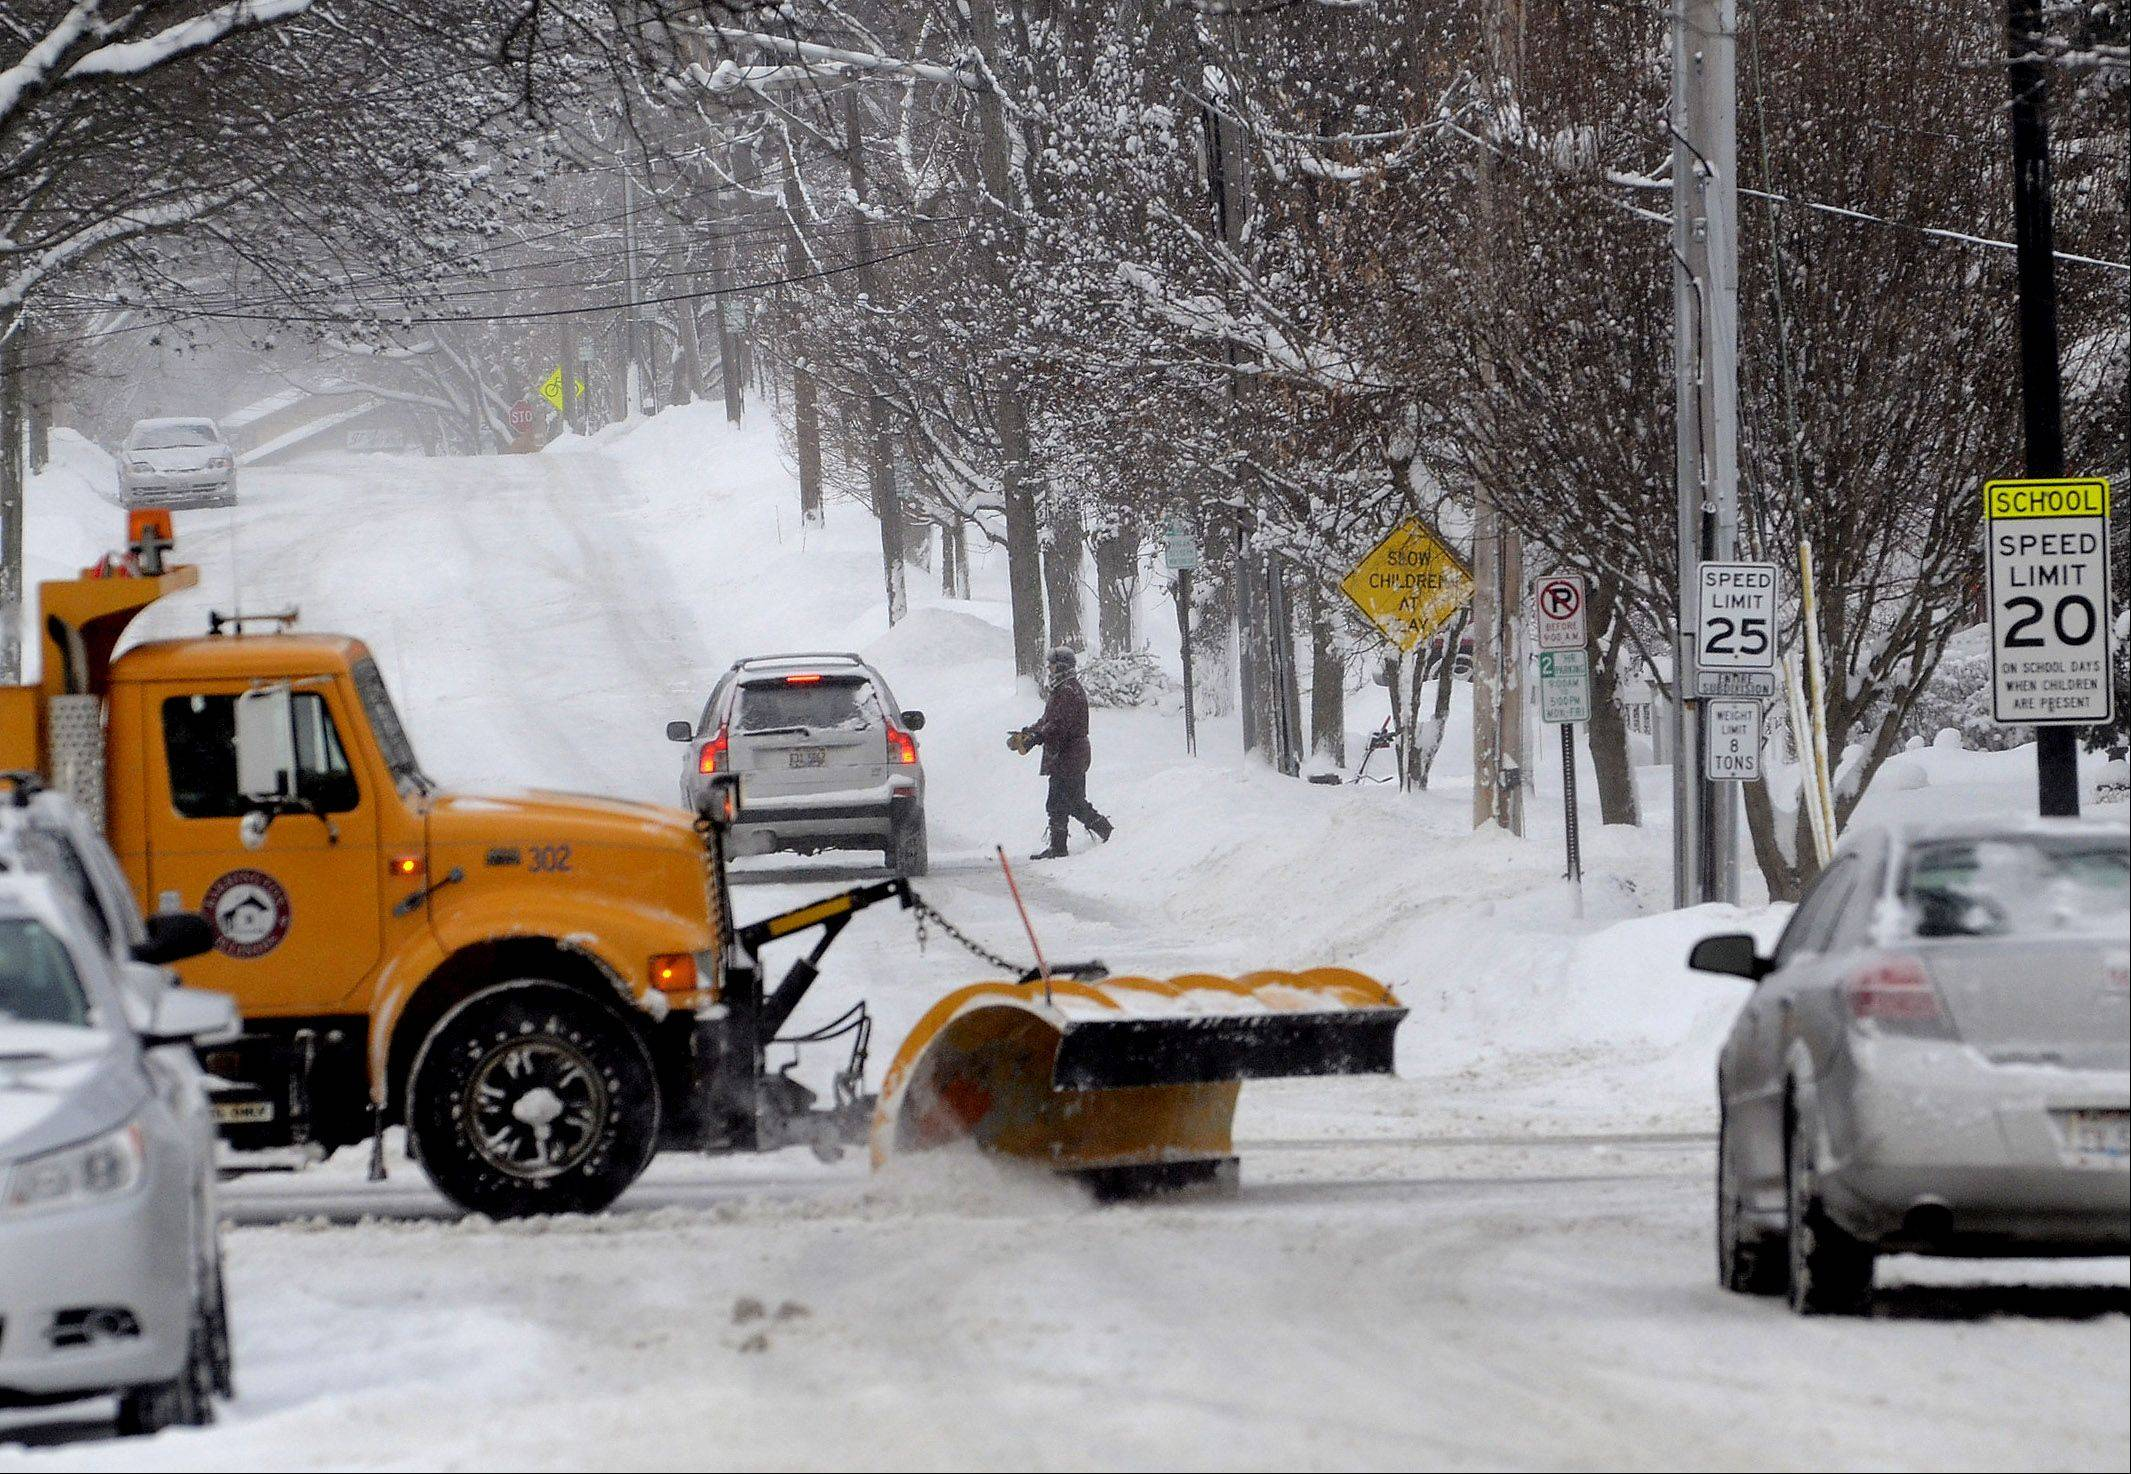 Plows continue to dig out downtown Barrington Thursday morning as 10 plus inches of snow fell overnight.